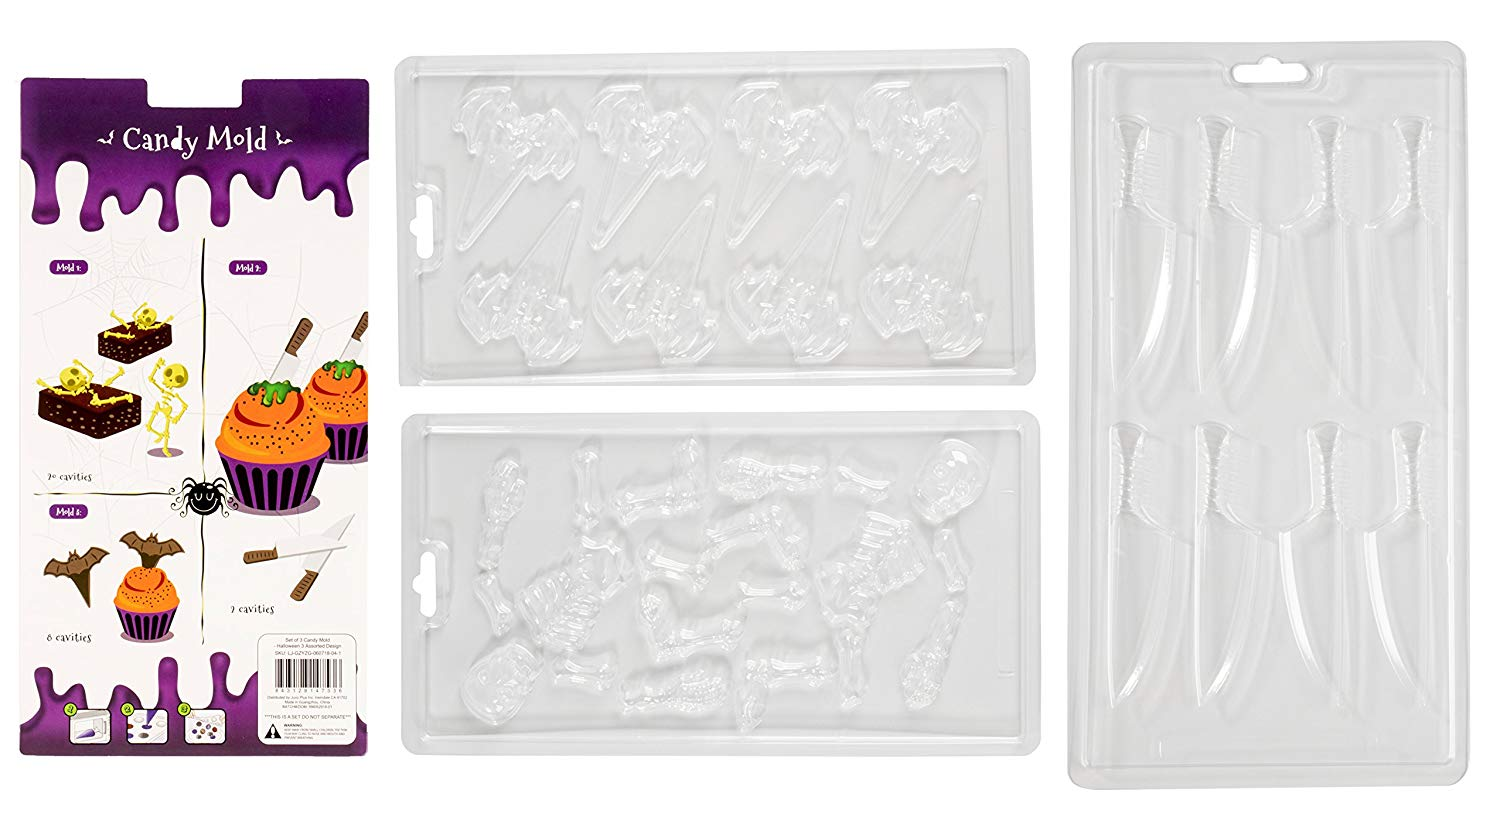 Get Quotations Chocolate Candy Molds 3 Pack Decorating For Parties Holiday Theme